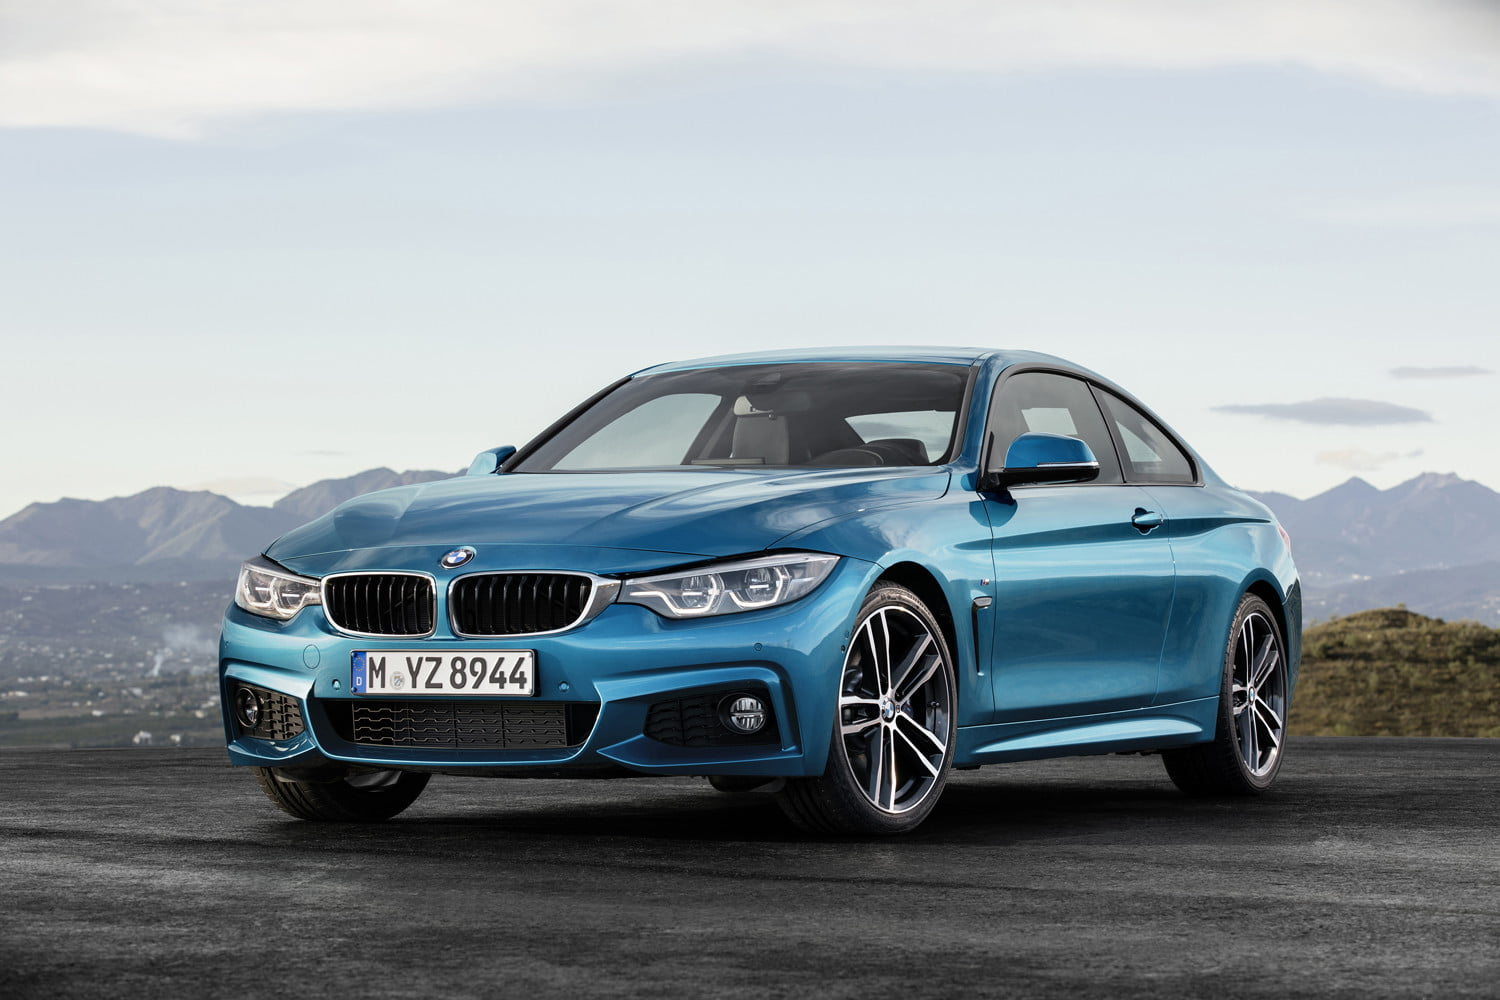 BMW fine-tunes the 4 Series to make it look sharper and drive even better